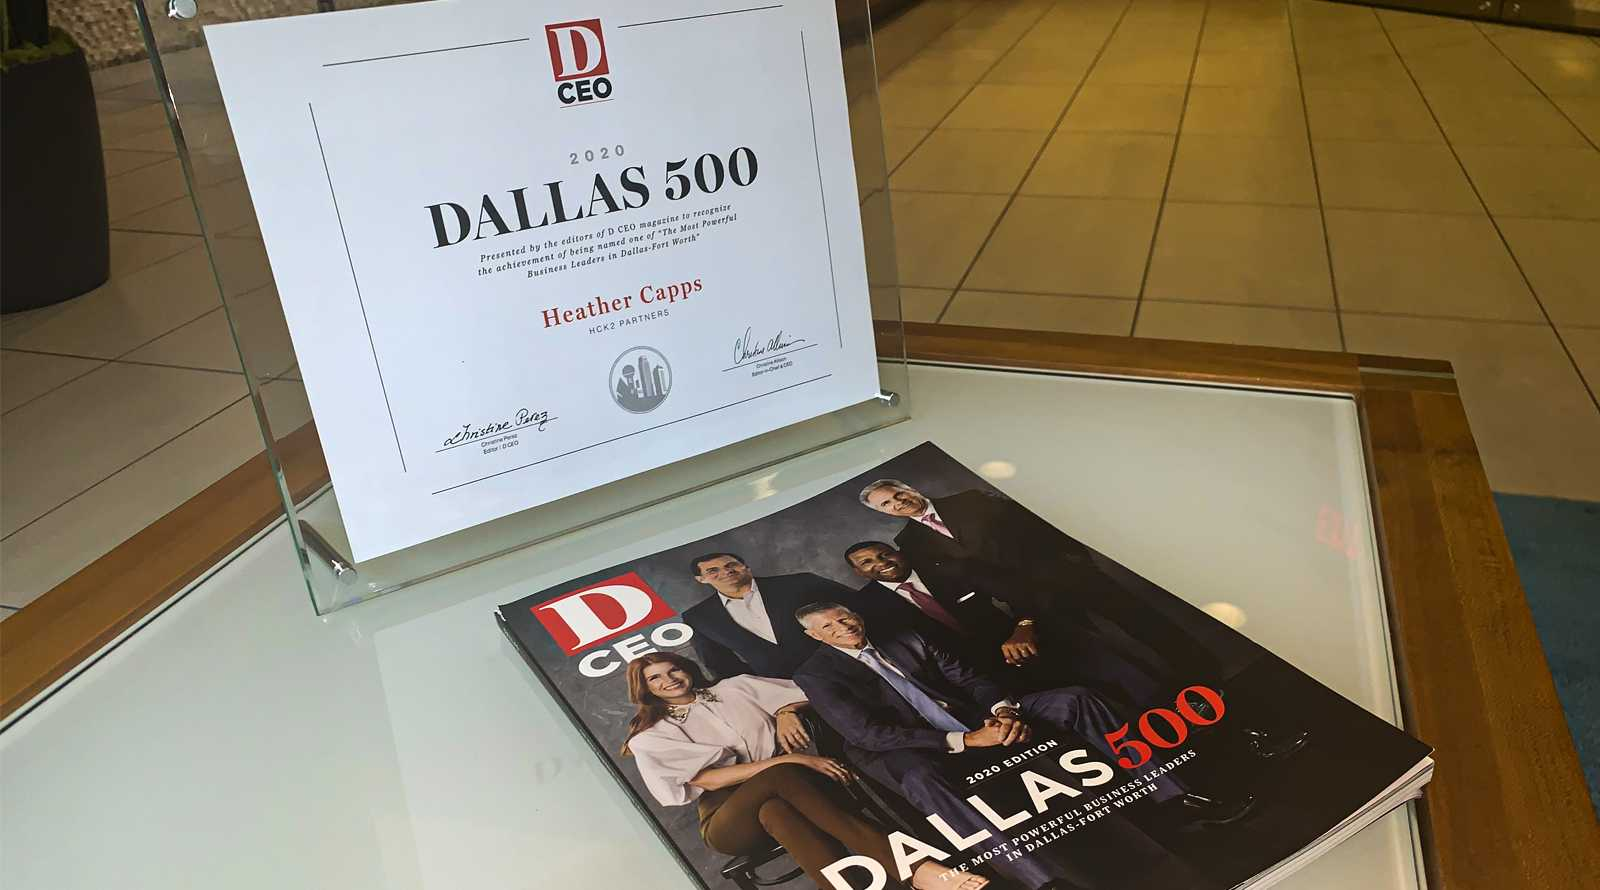 D CEO Dallas 500 Cover and certificate for Heather Capps